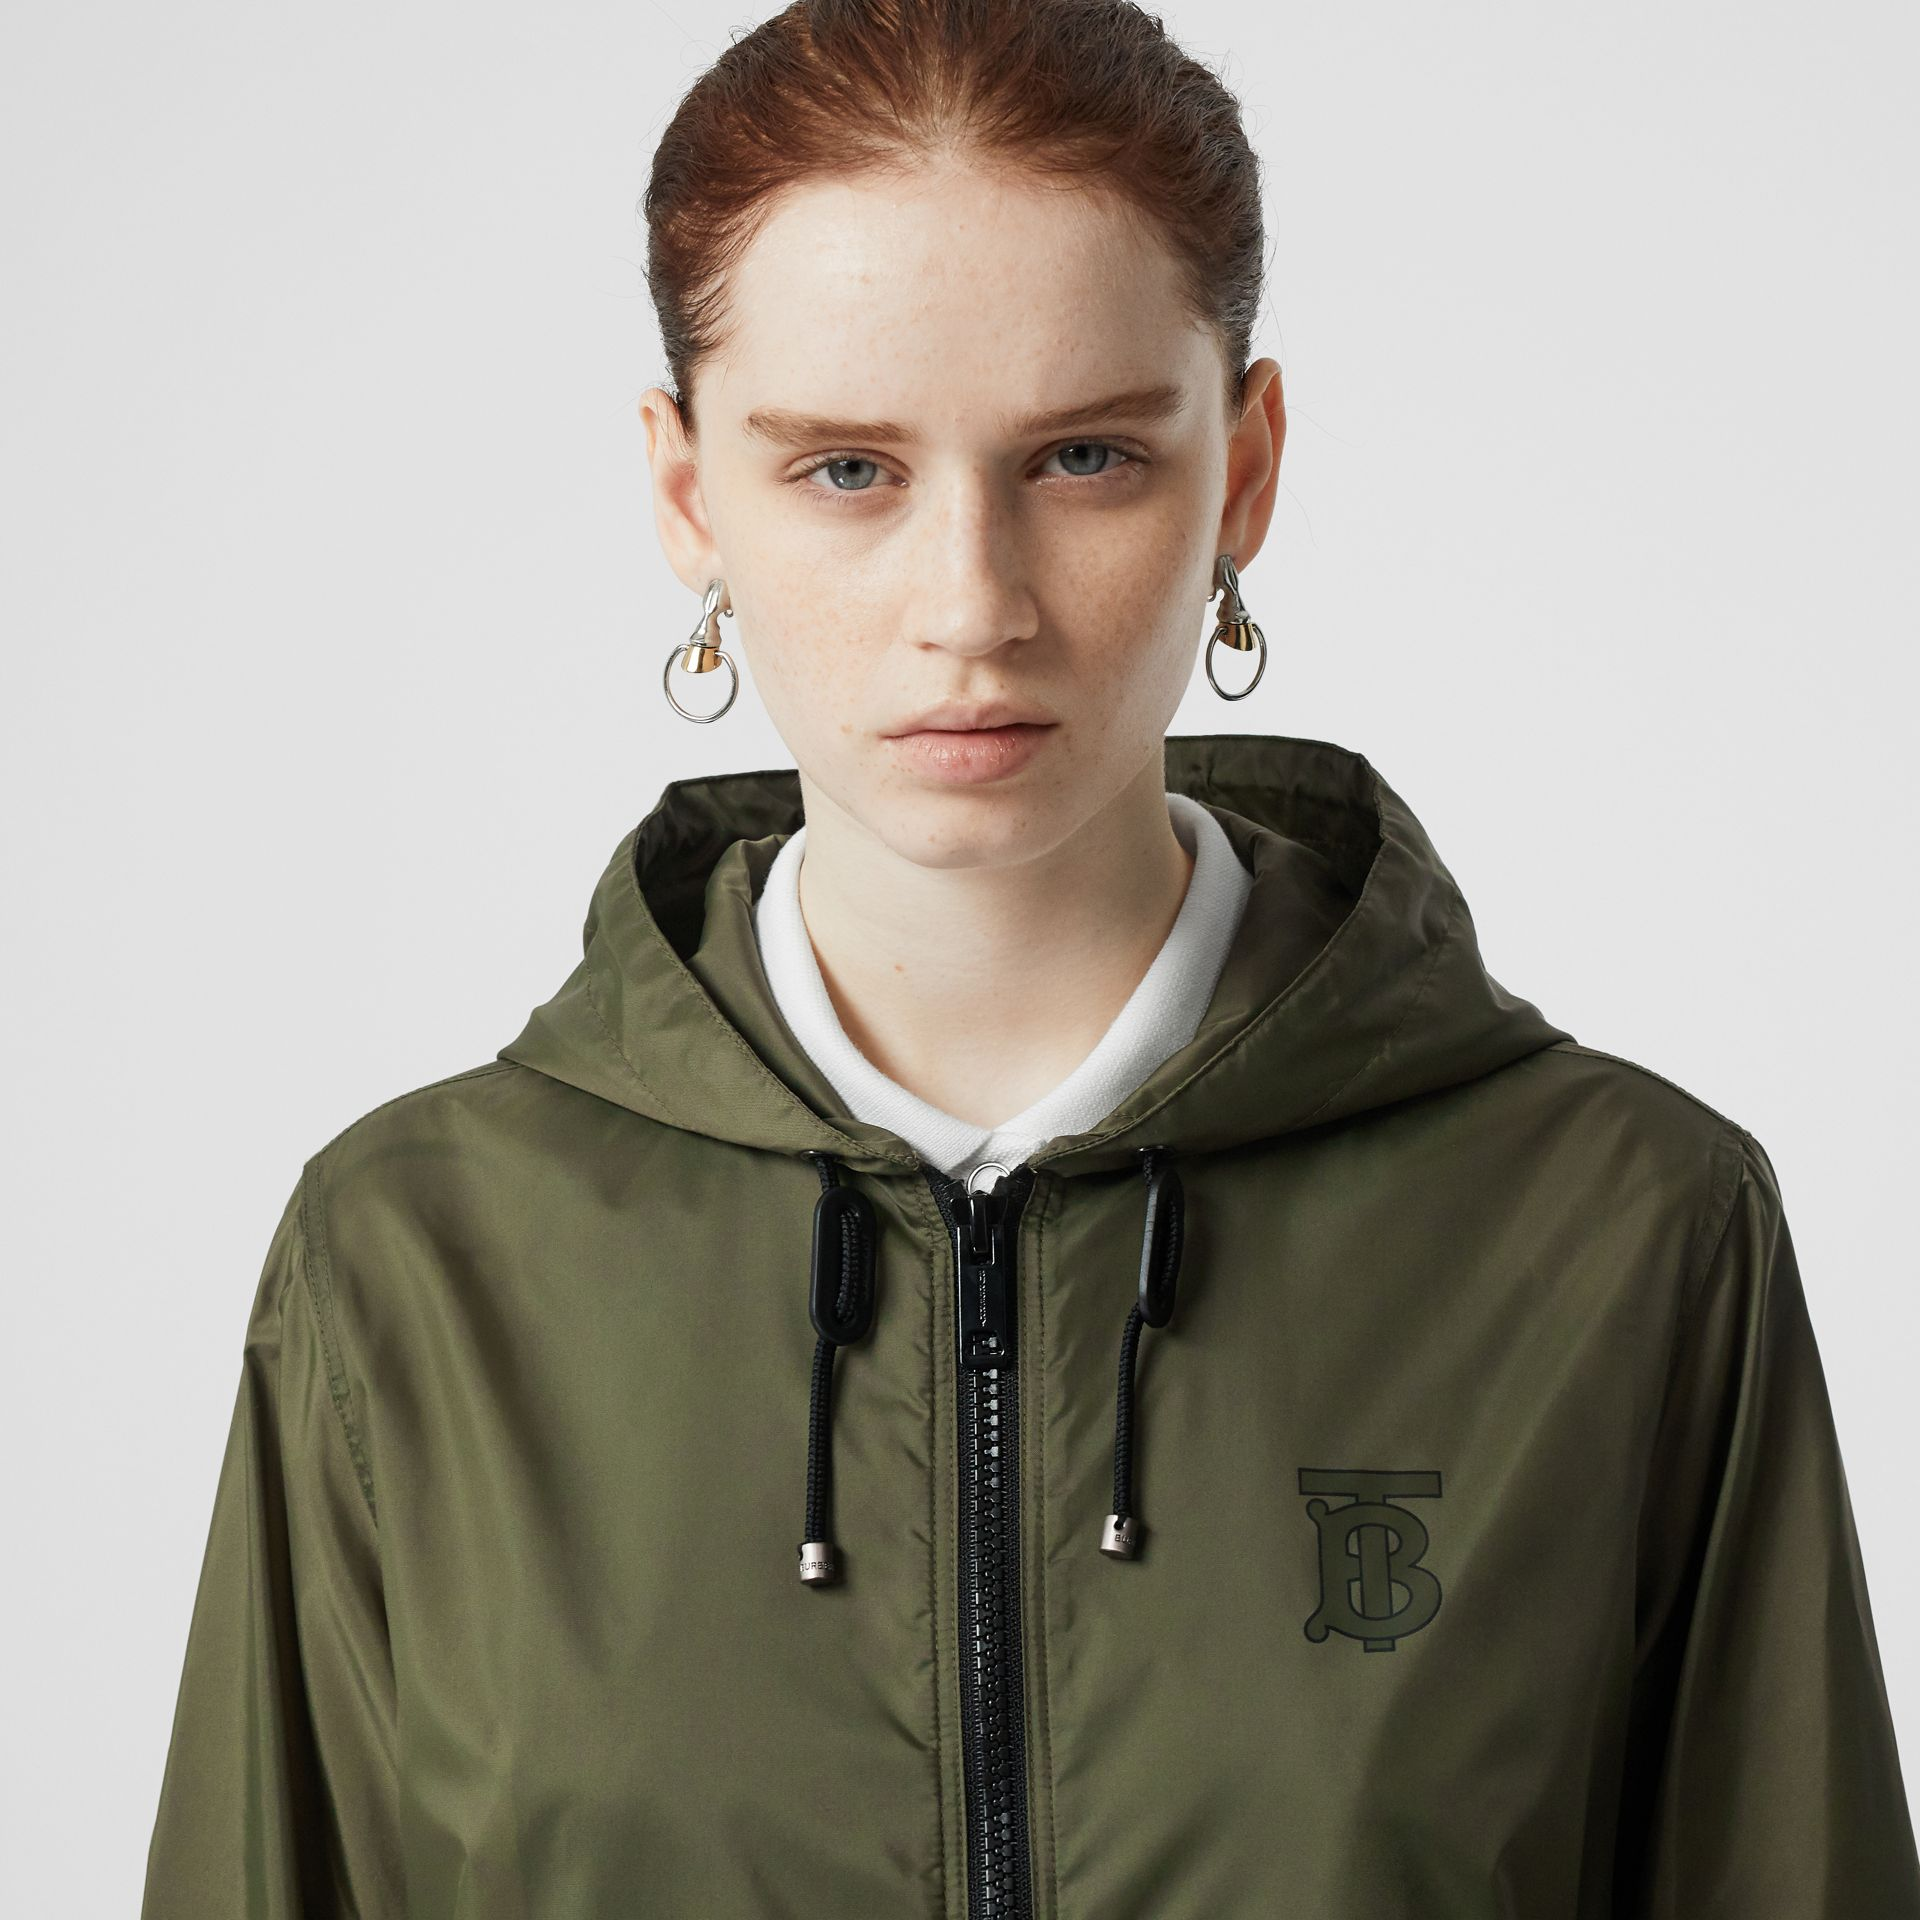 Monogram Motif Lightweight Hooded Jacket in Light Olive - Women | Burberry United States - gallery image 1